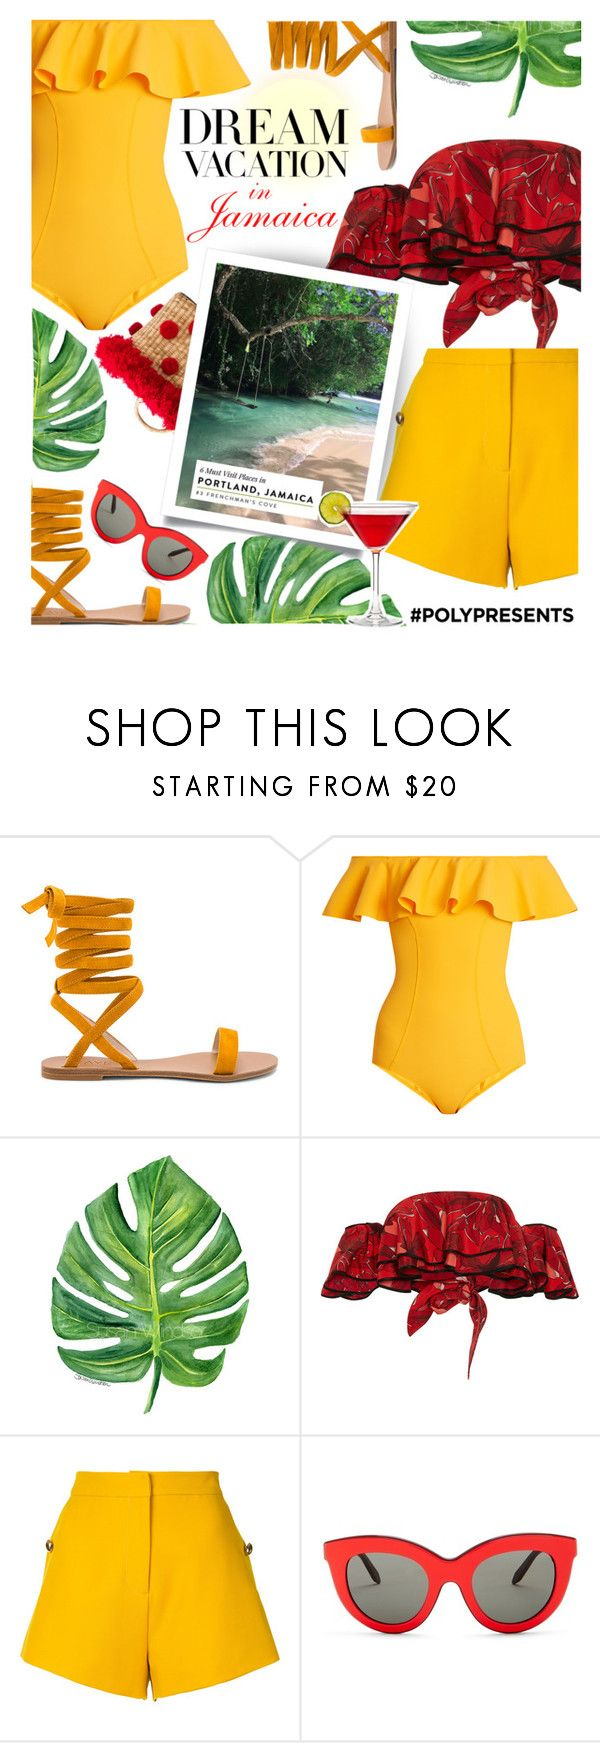 """#PolyPresents: Dream Vacation"" by liligwada ❤ liked on Polyvore featuring Raye, Lisa Marie Fernandez, Johanna Ortiz, macgraw, Victoria Beckham and Nannacay"